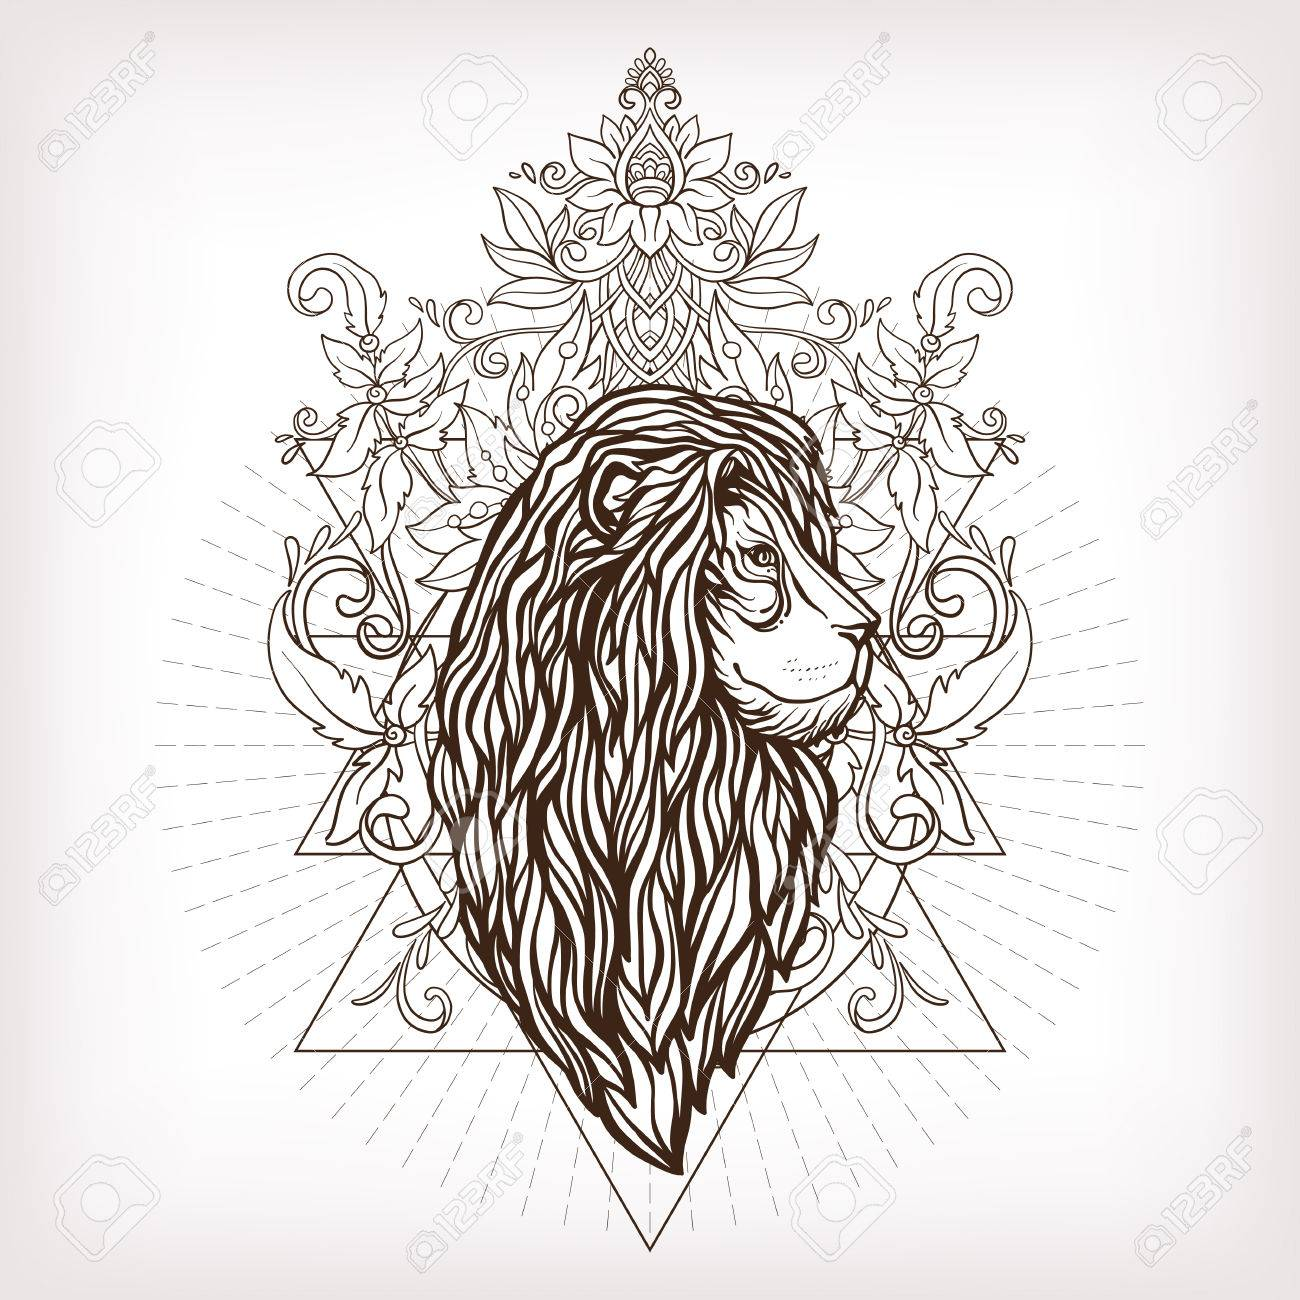 Vector Lion Ornemental Tete Avec La Geometrie Sacree Hand Drawn